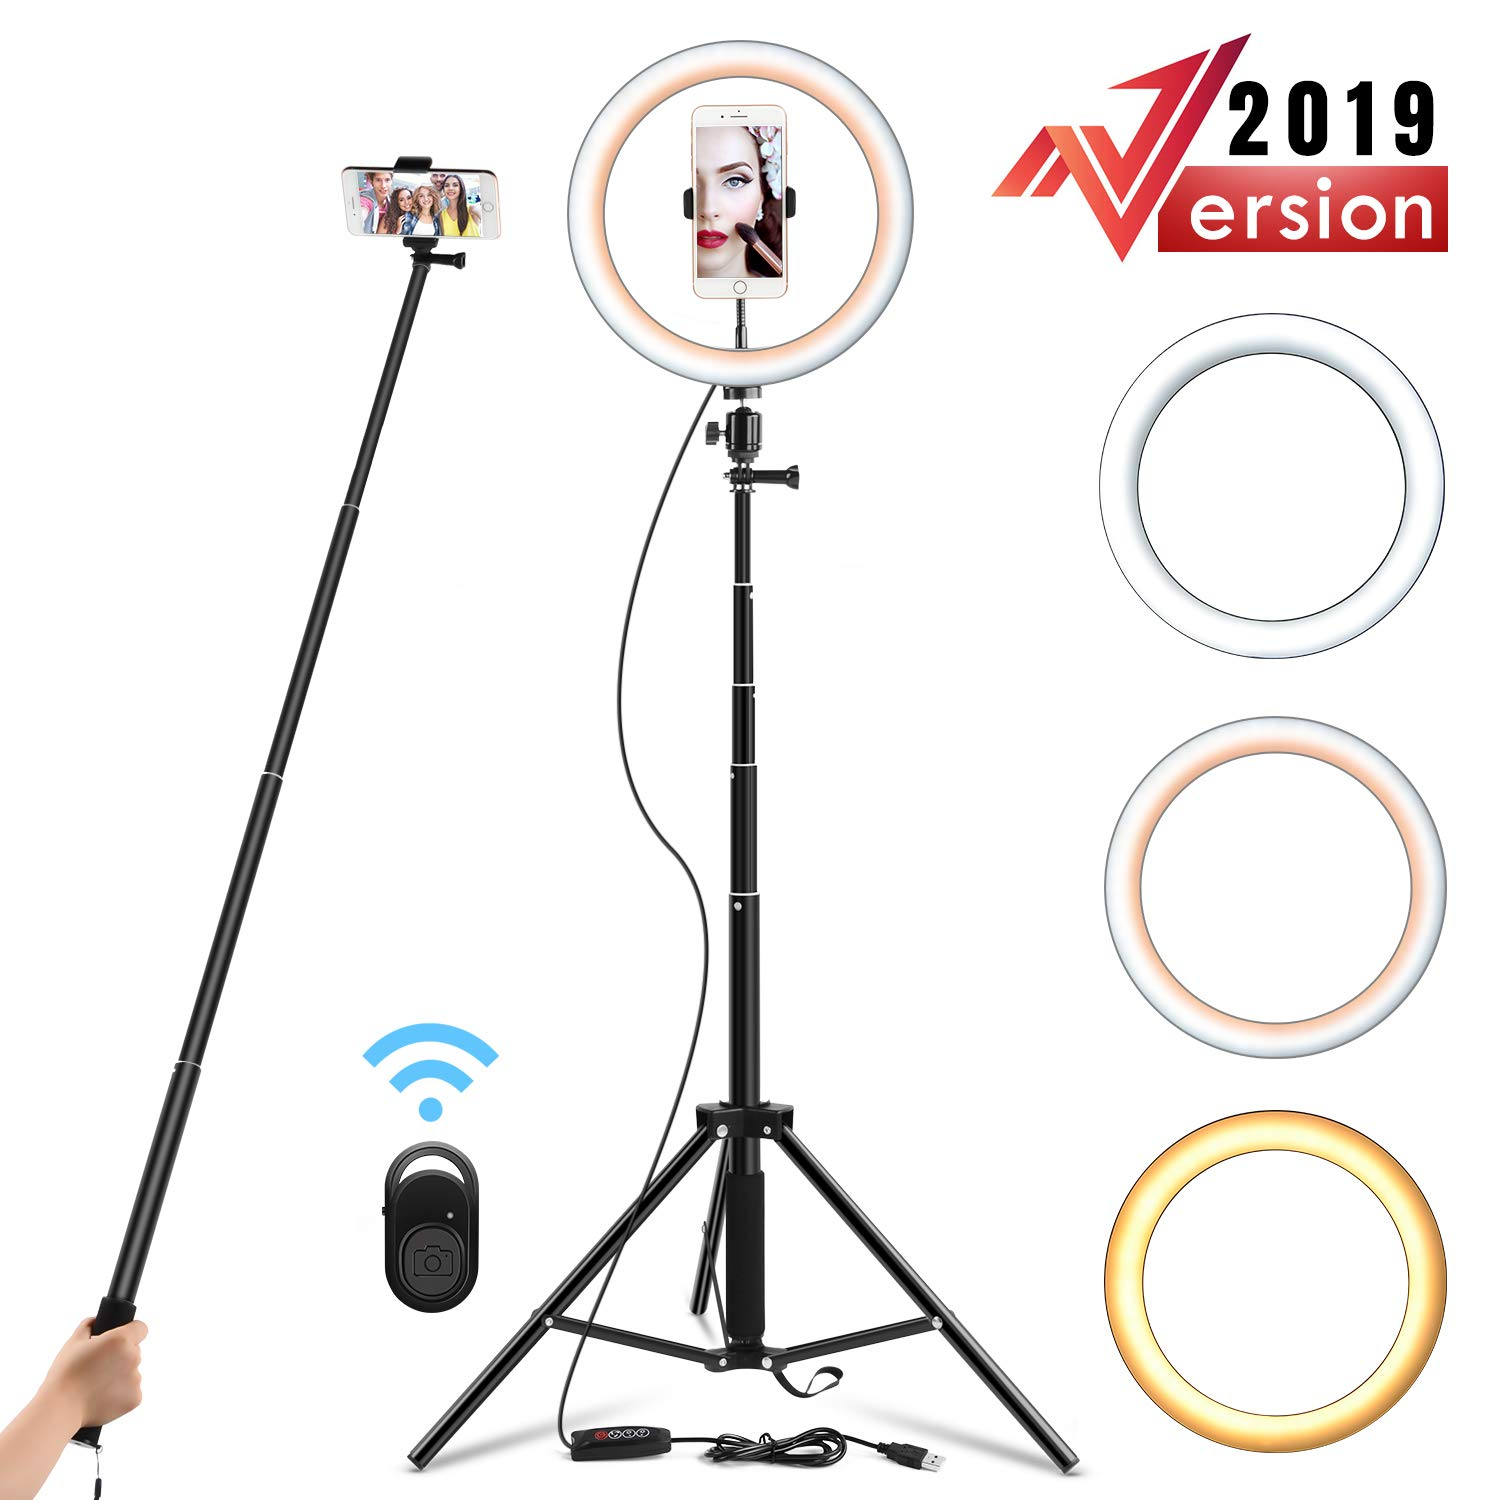 Yesker 10.2'' Selfie Ring Light Dimmable with Tripod Stand & Cell Phone Holder, Mini Led Camera Ringlight for Live Streaming/Makeup/YouTube Video/Photography, Remote Control by Yesker